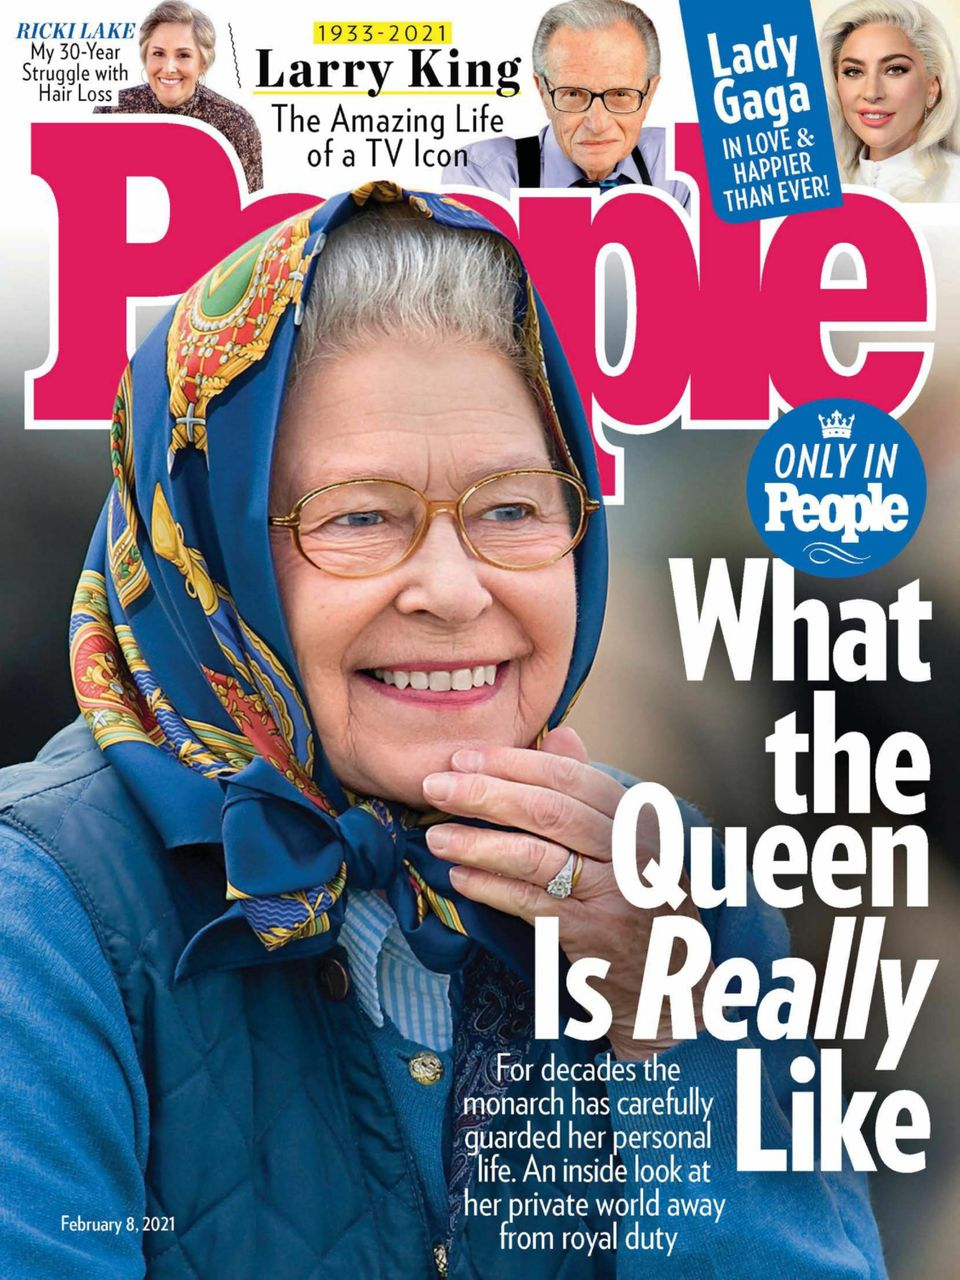 Magazine covers this week: People